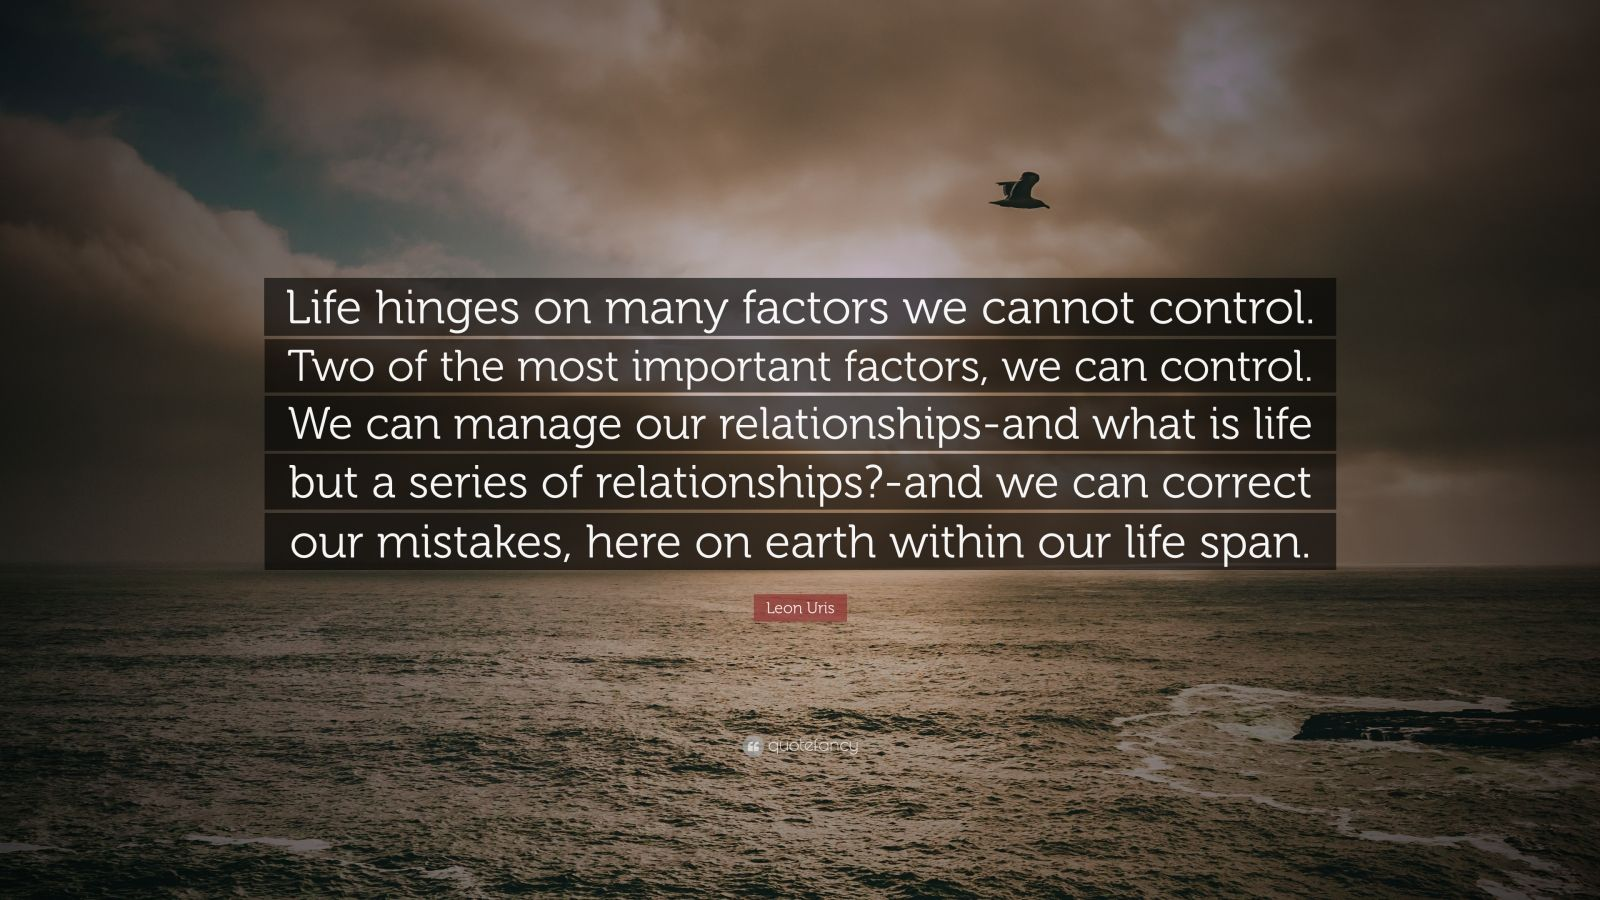 "Leon Uris Quote: ""Life hinges on many factors we cannot control. Two of the most important factors, we can control. We can manage our relationships-and what is life but a series of relationships?-and we can correct our mistakes, here on earth within our life span."""